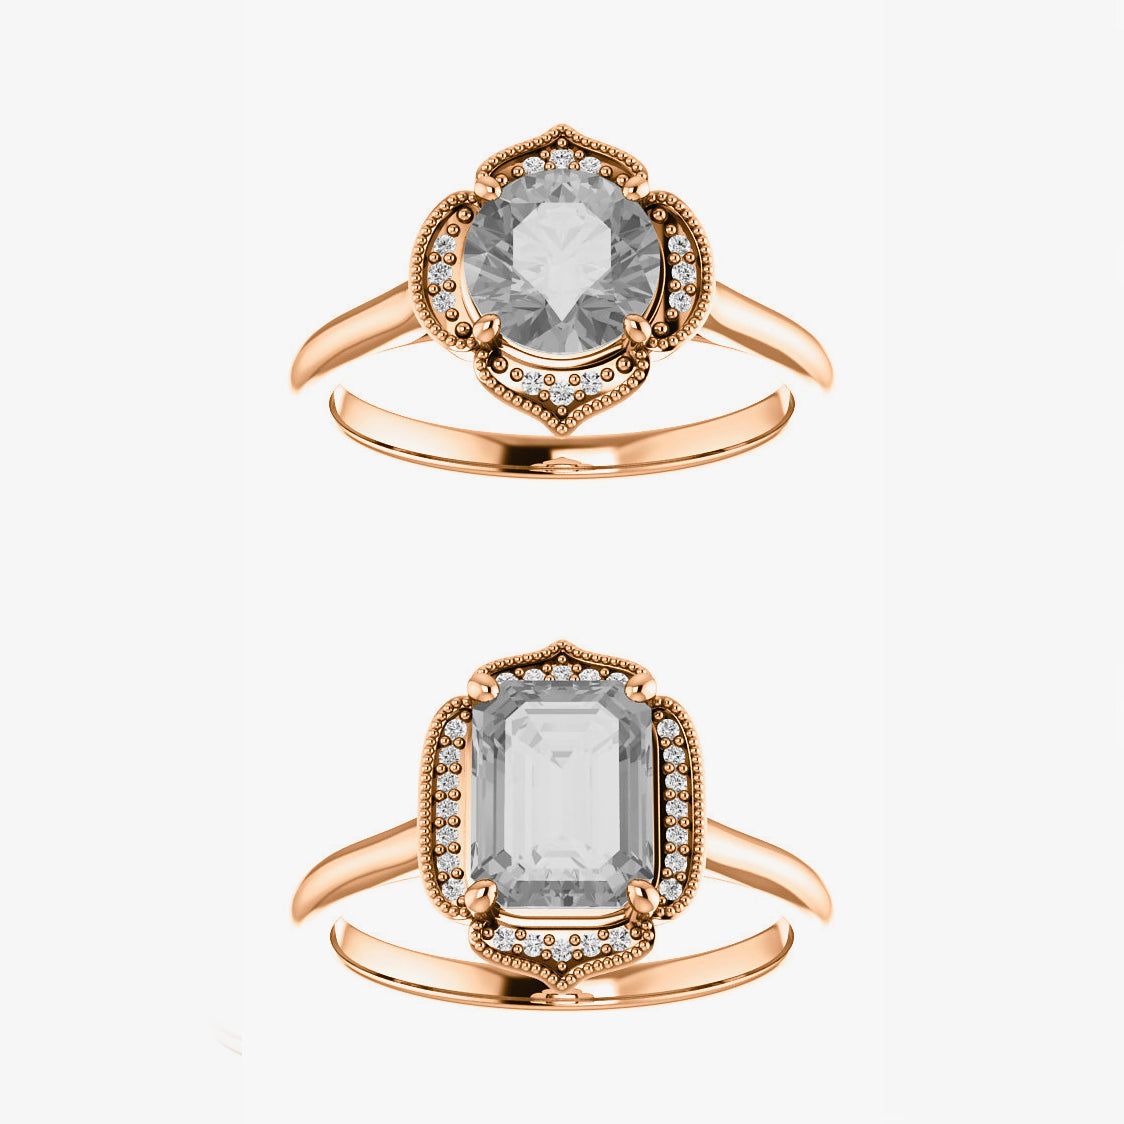 Clementine Setting - Celestial Diamonds ® by Midwinter Co.